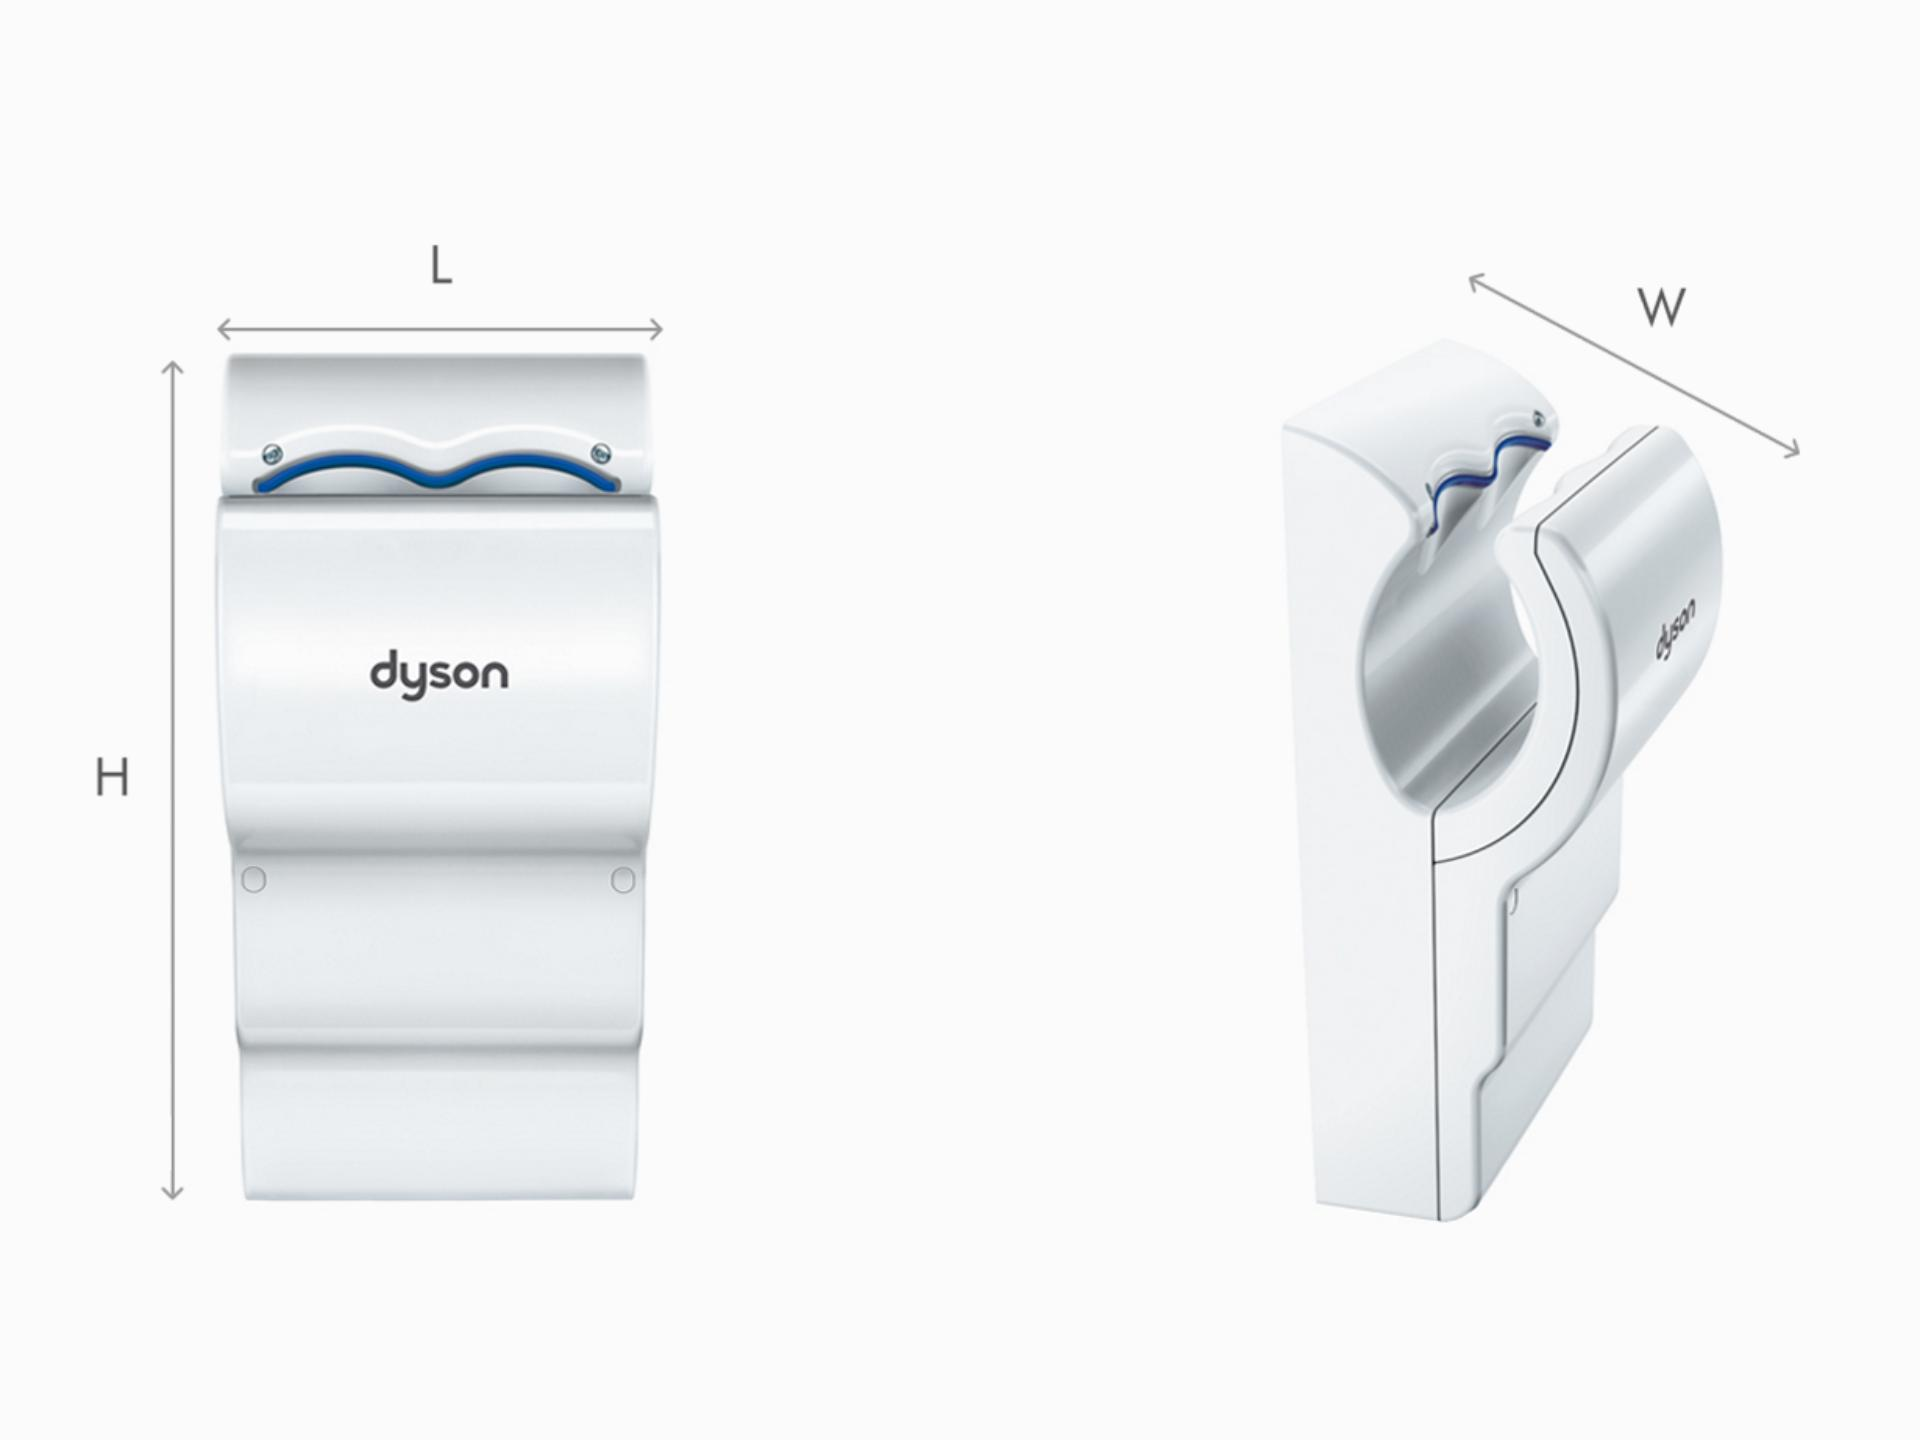 Illustration of Dyson Airblade dB grey hand dryer dimensions